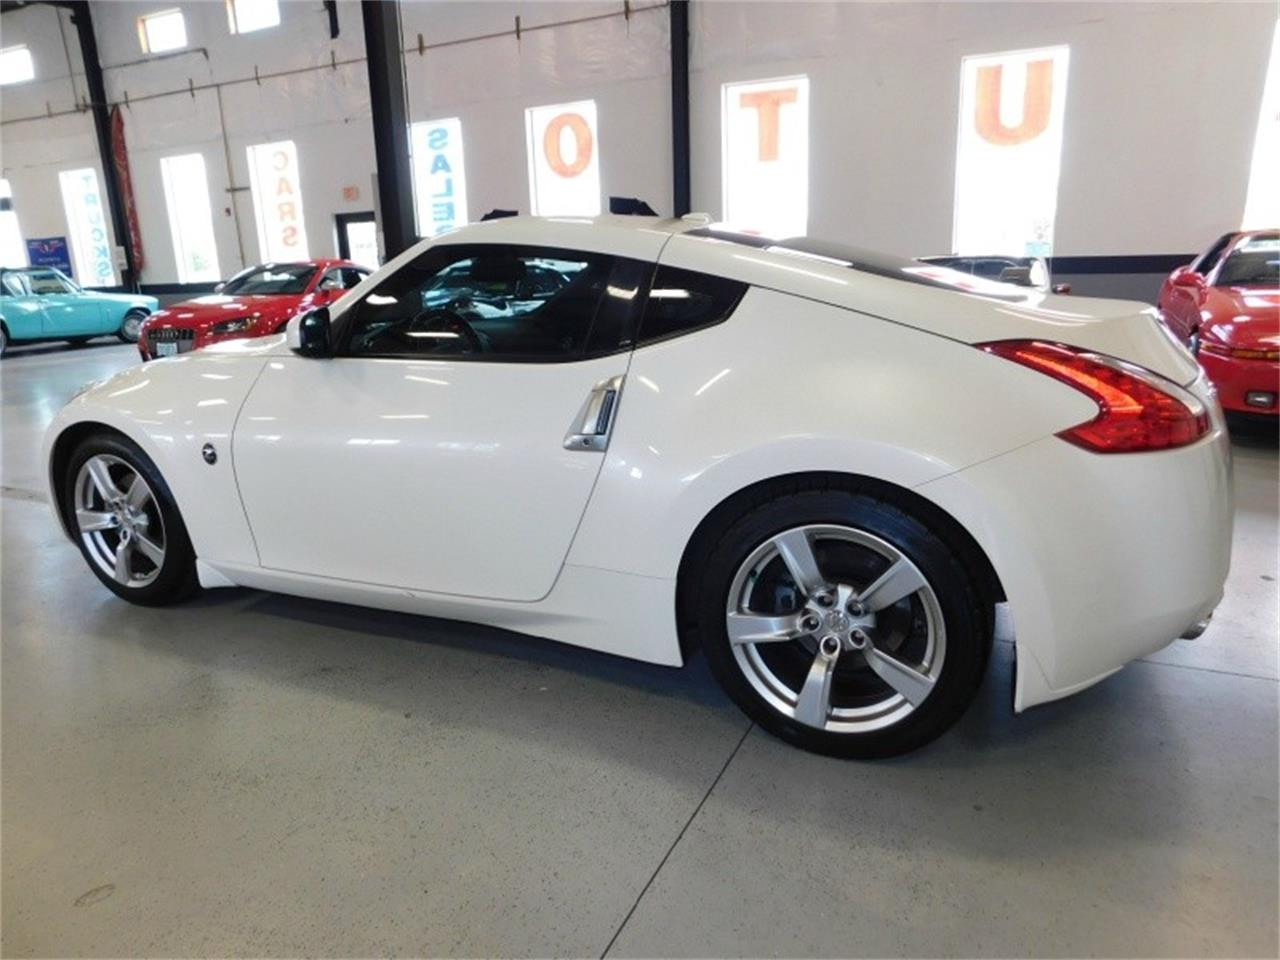 2009 Nissan 370Z (CC-1253445) for sale in Bend, Oregon